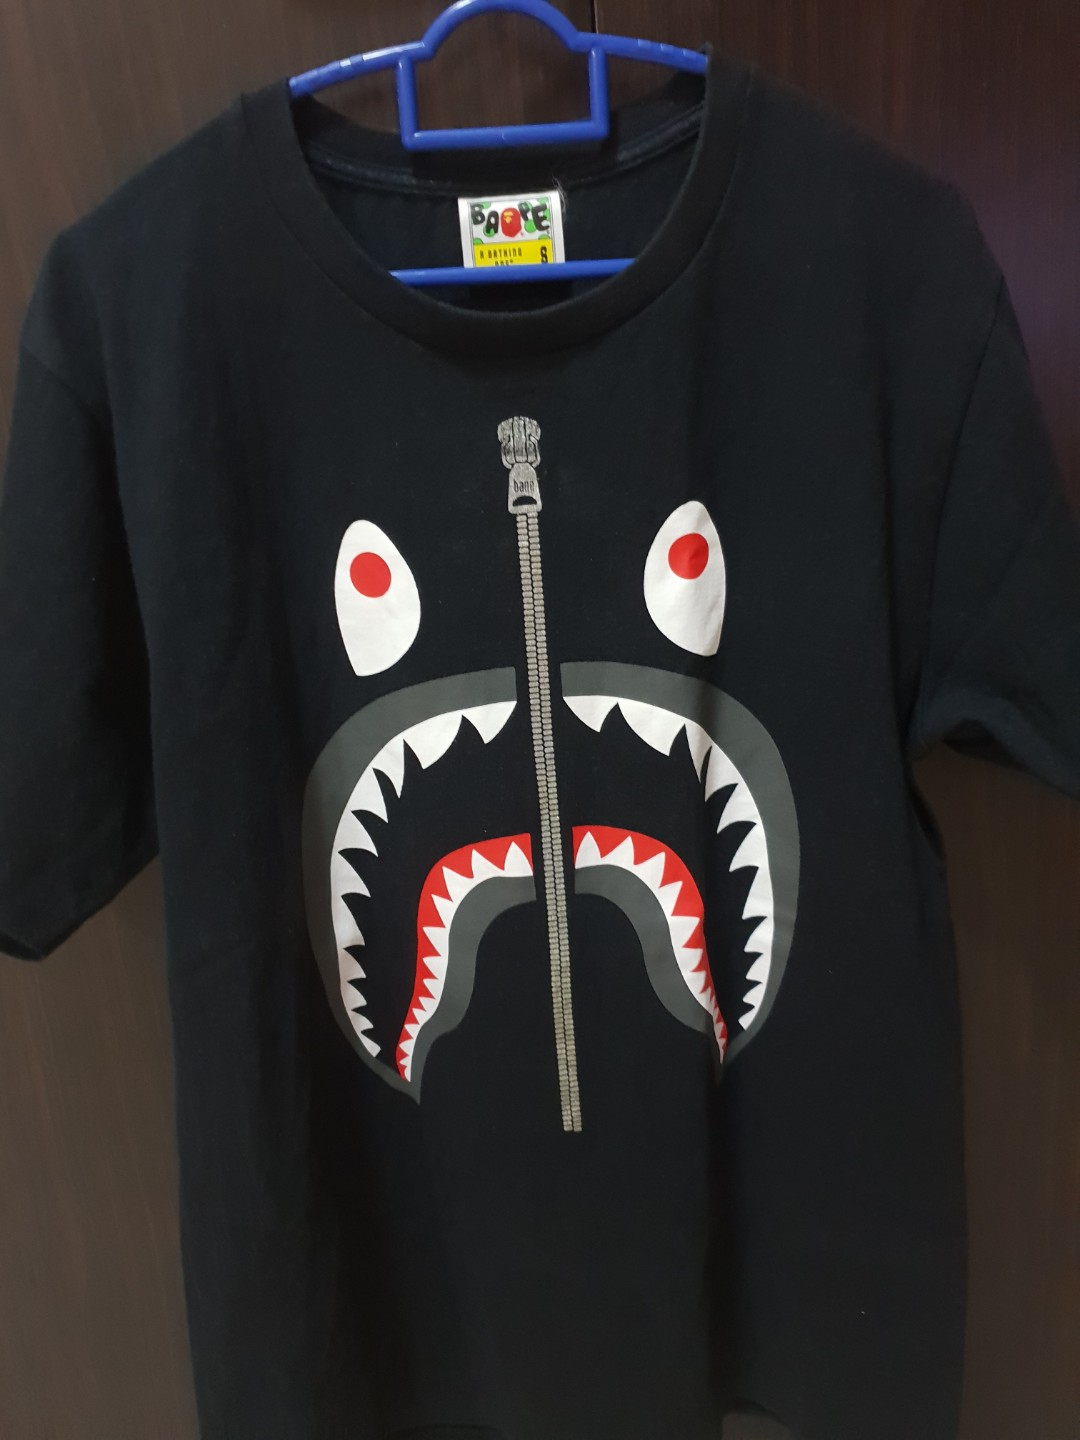 211706c5 Bape Shark Tee, Men's Fashion, Clothes, Tops on Carousell